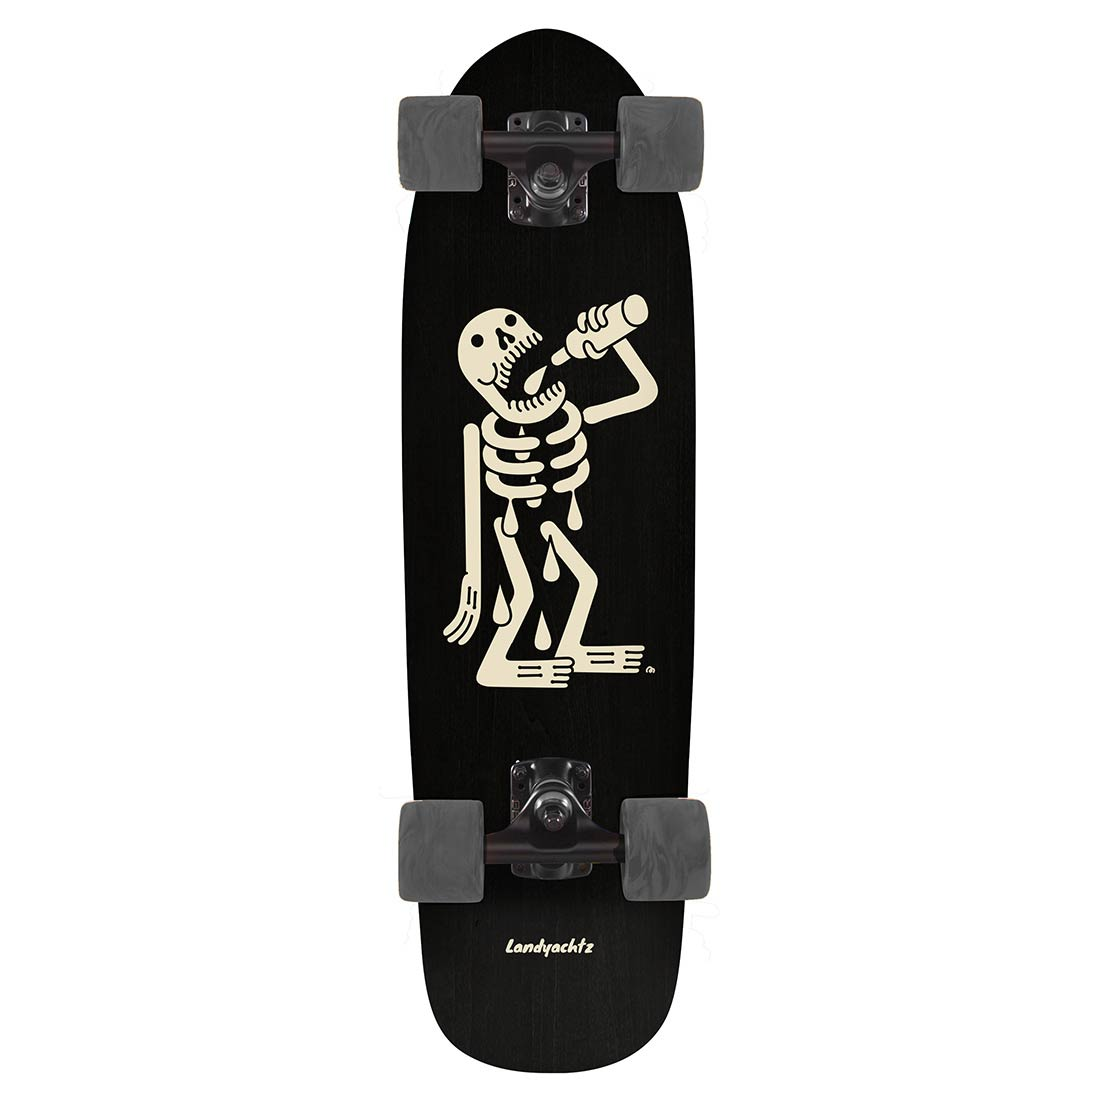 Buy Landyachtz Dinghy Skeleton Canada Online Sales Vancouver Pickup